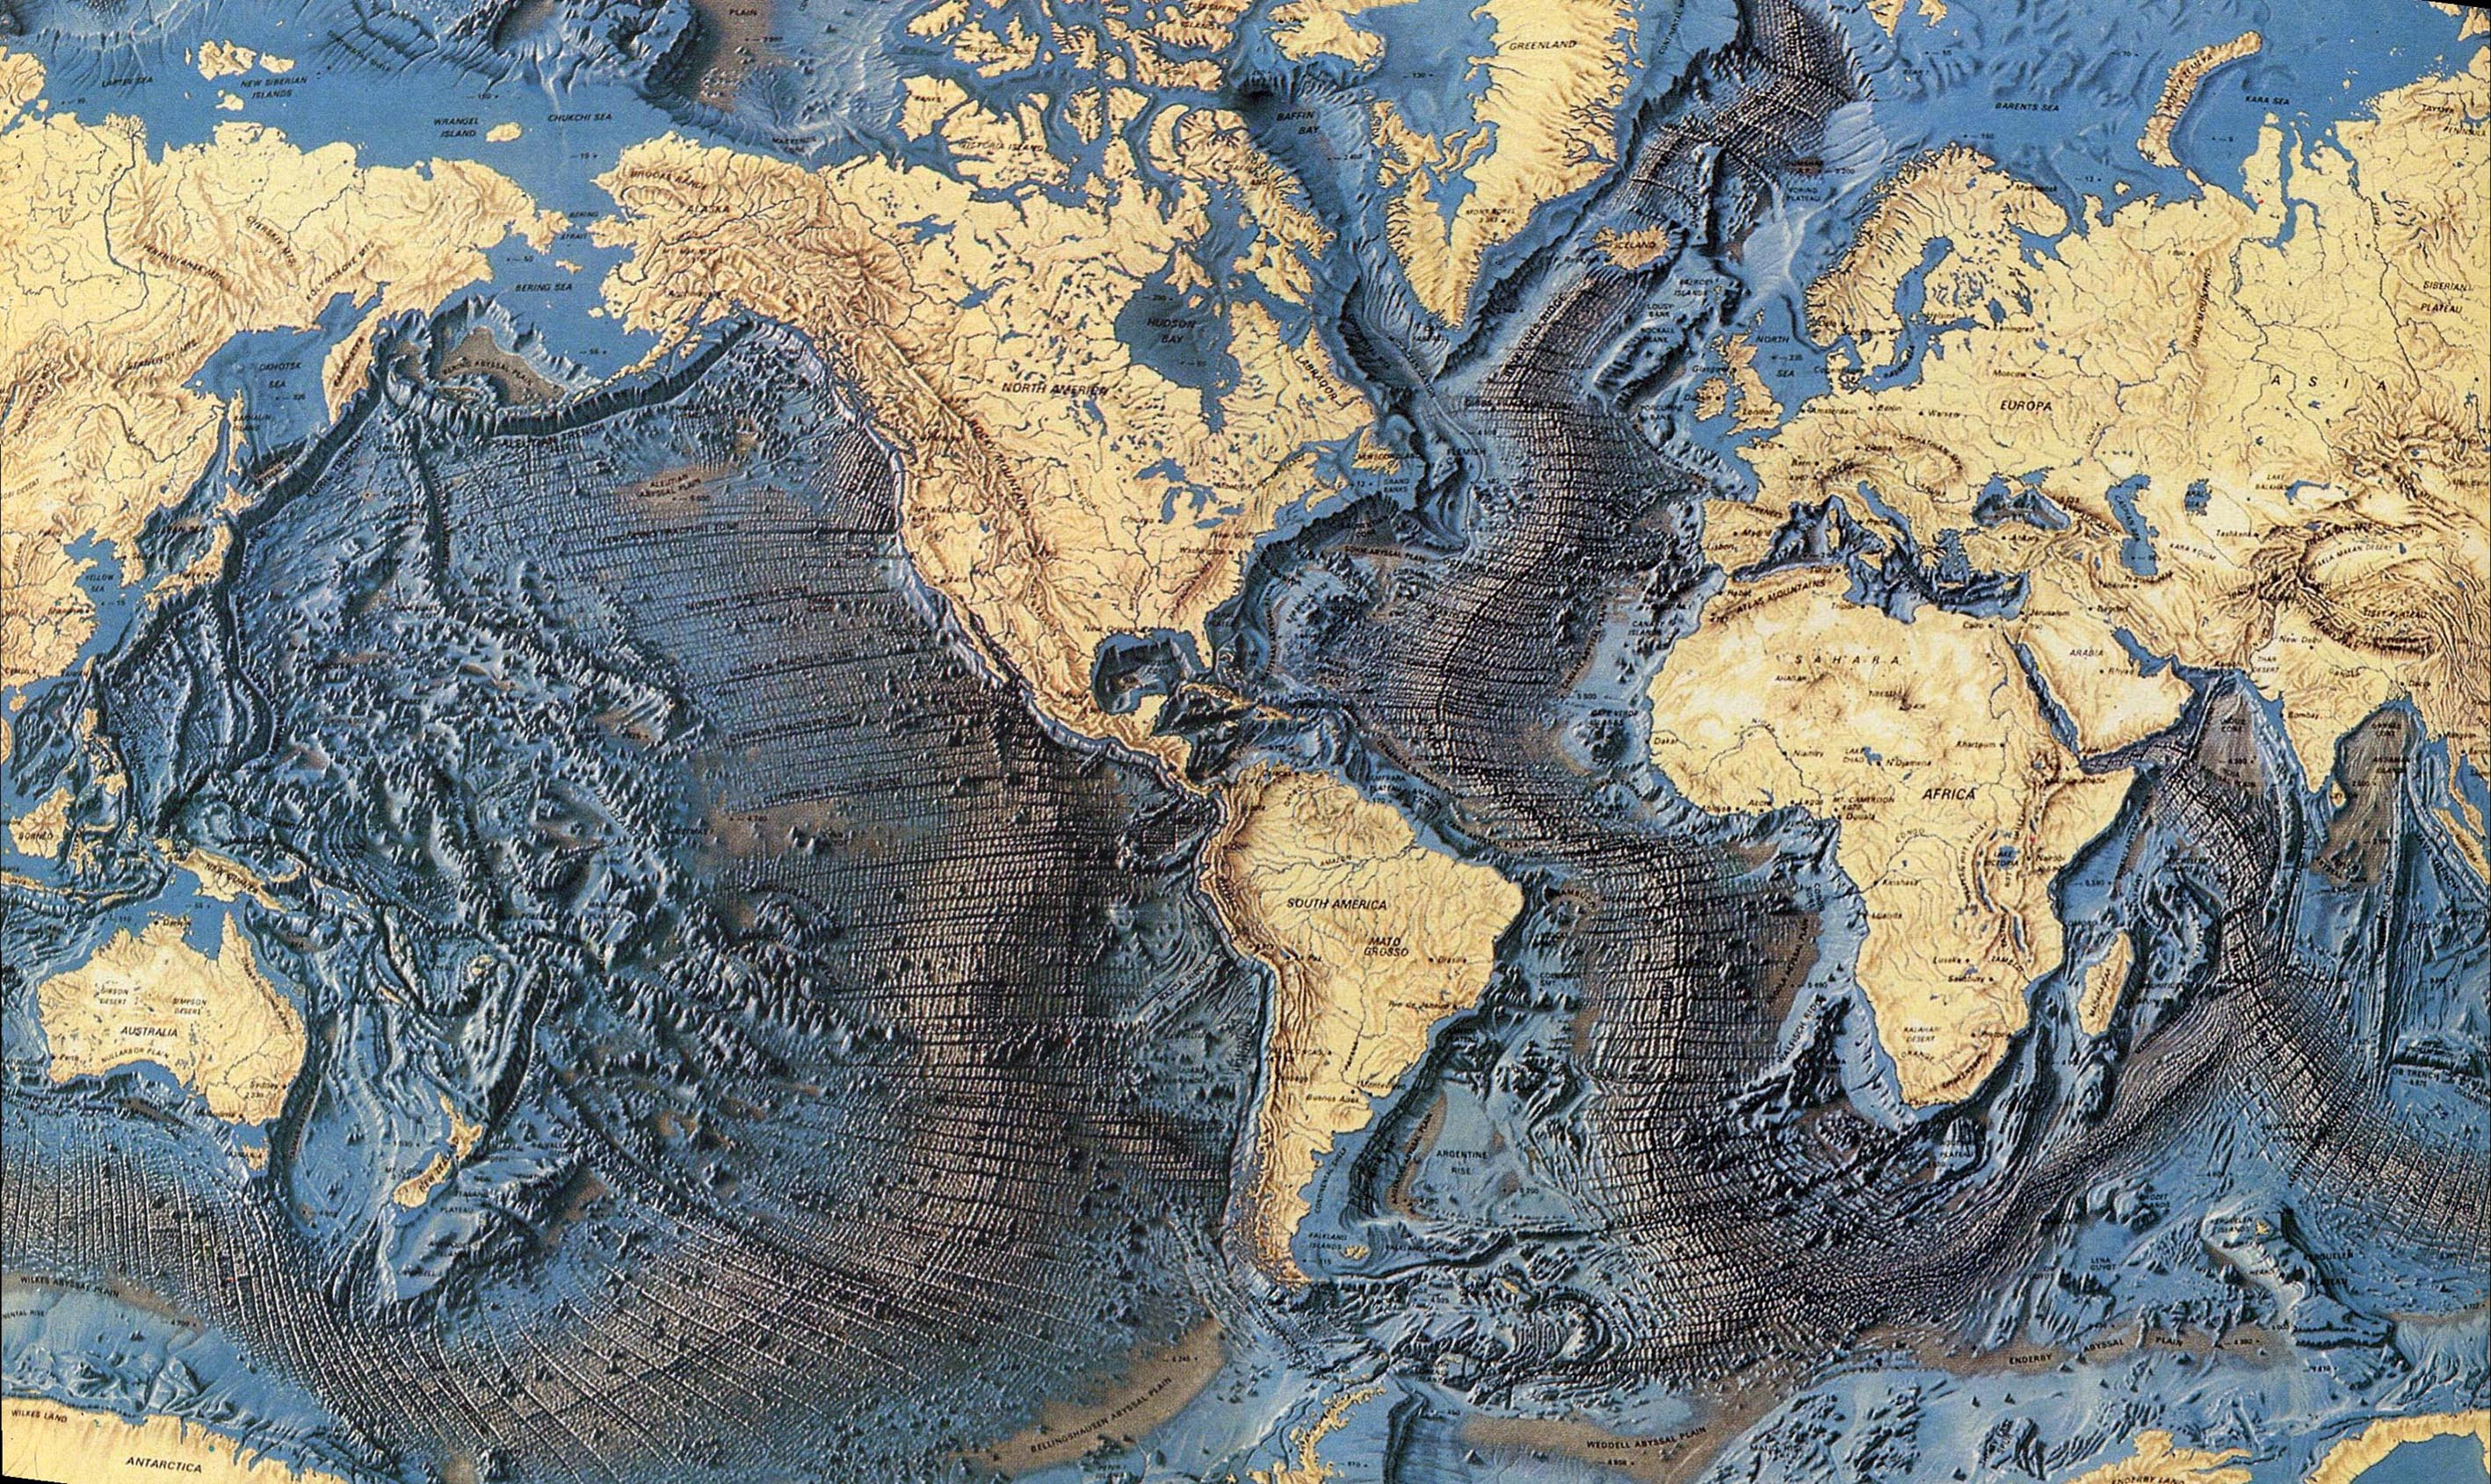 World Ocean Floor Map - Earthly Mission on map of australia, world map showing oceans, map of antarctica, map of caribbean, map of seas, map of cities, map of home, map of indian ocean, map of sh, printable world map with oceans,